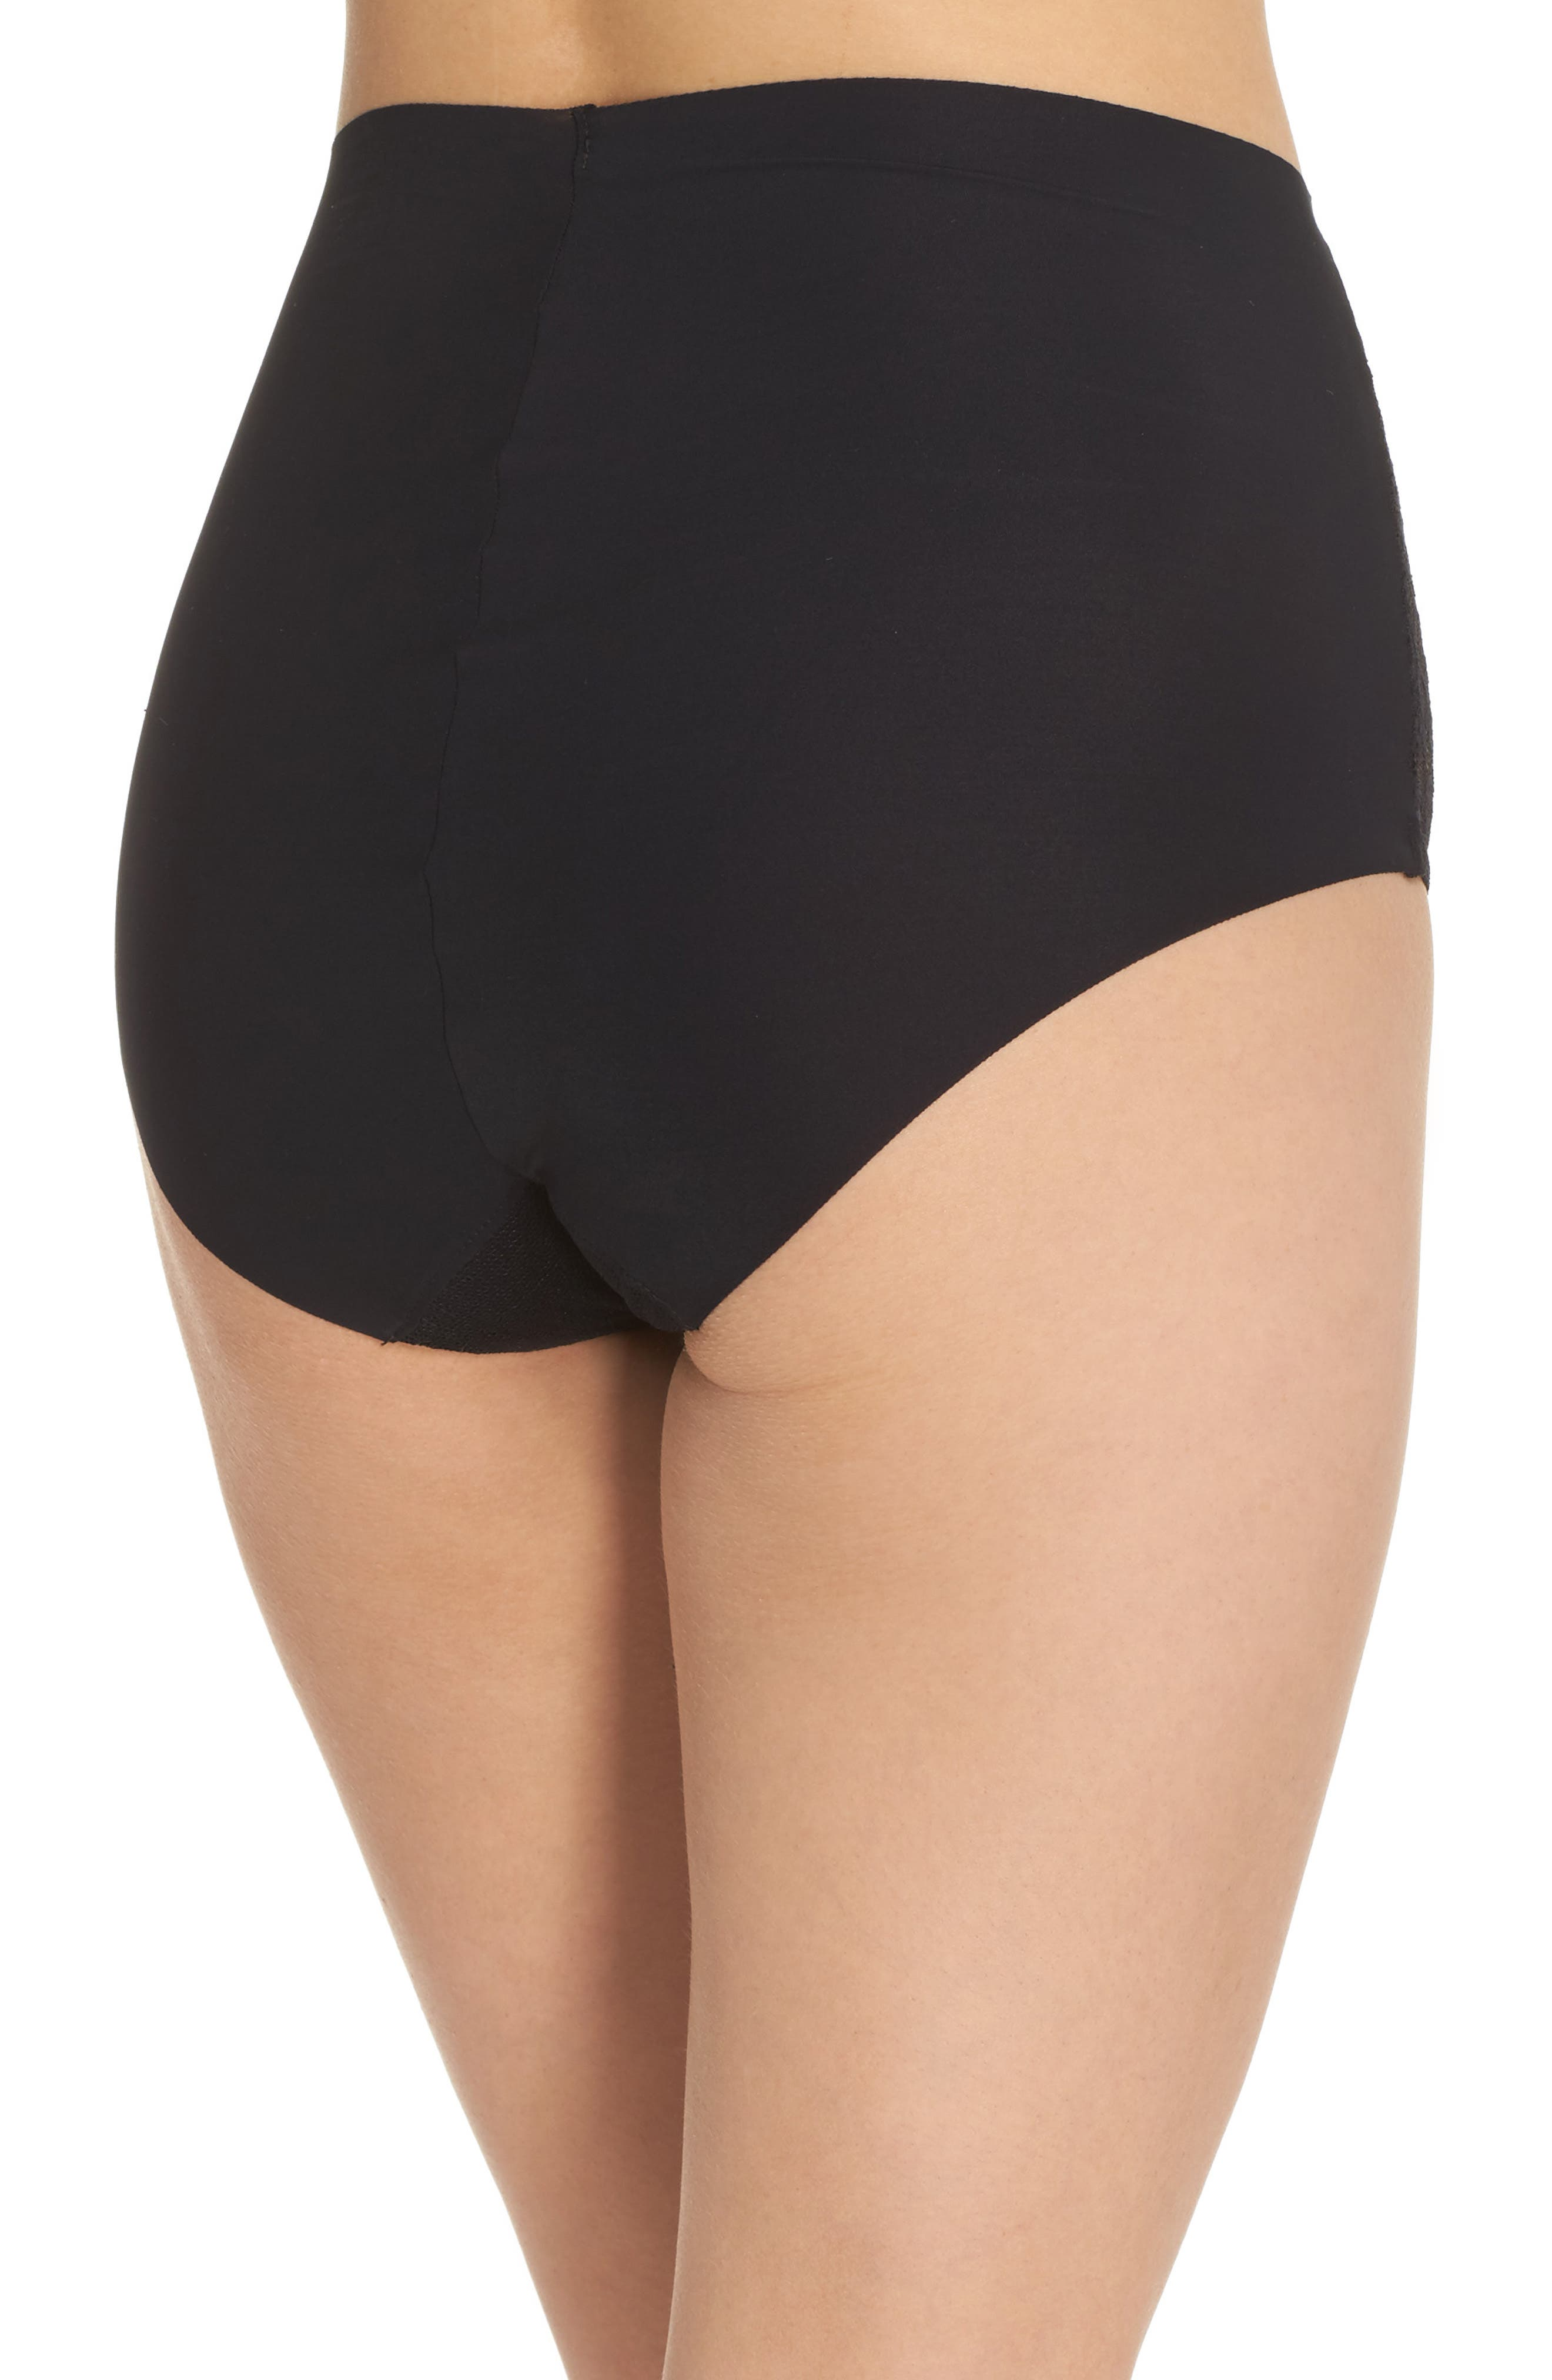 Double Take High Waist Brief,                             Alternate thumbnail 2, color,                             001